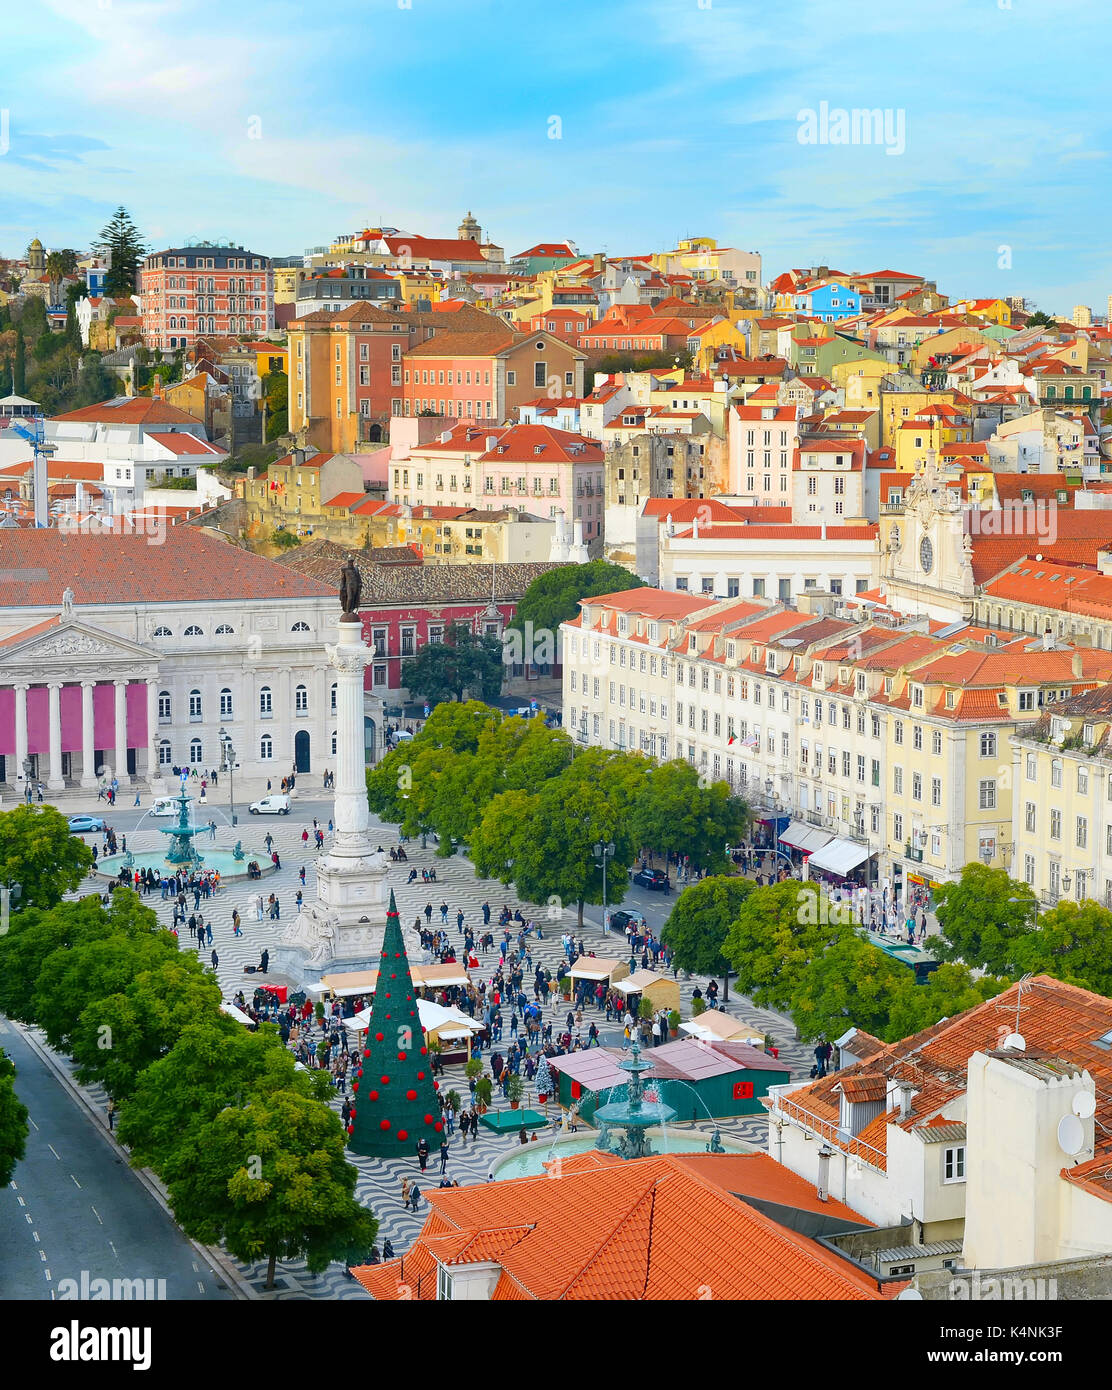 Aerial view of Rossio square in Old Town of Lisbon, Portugal - Stock Image